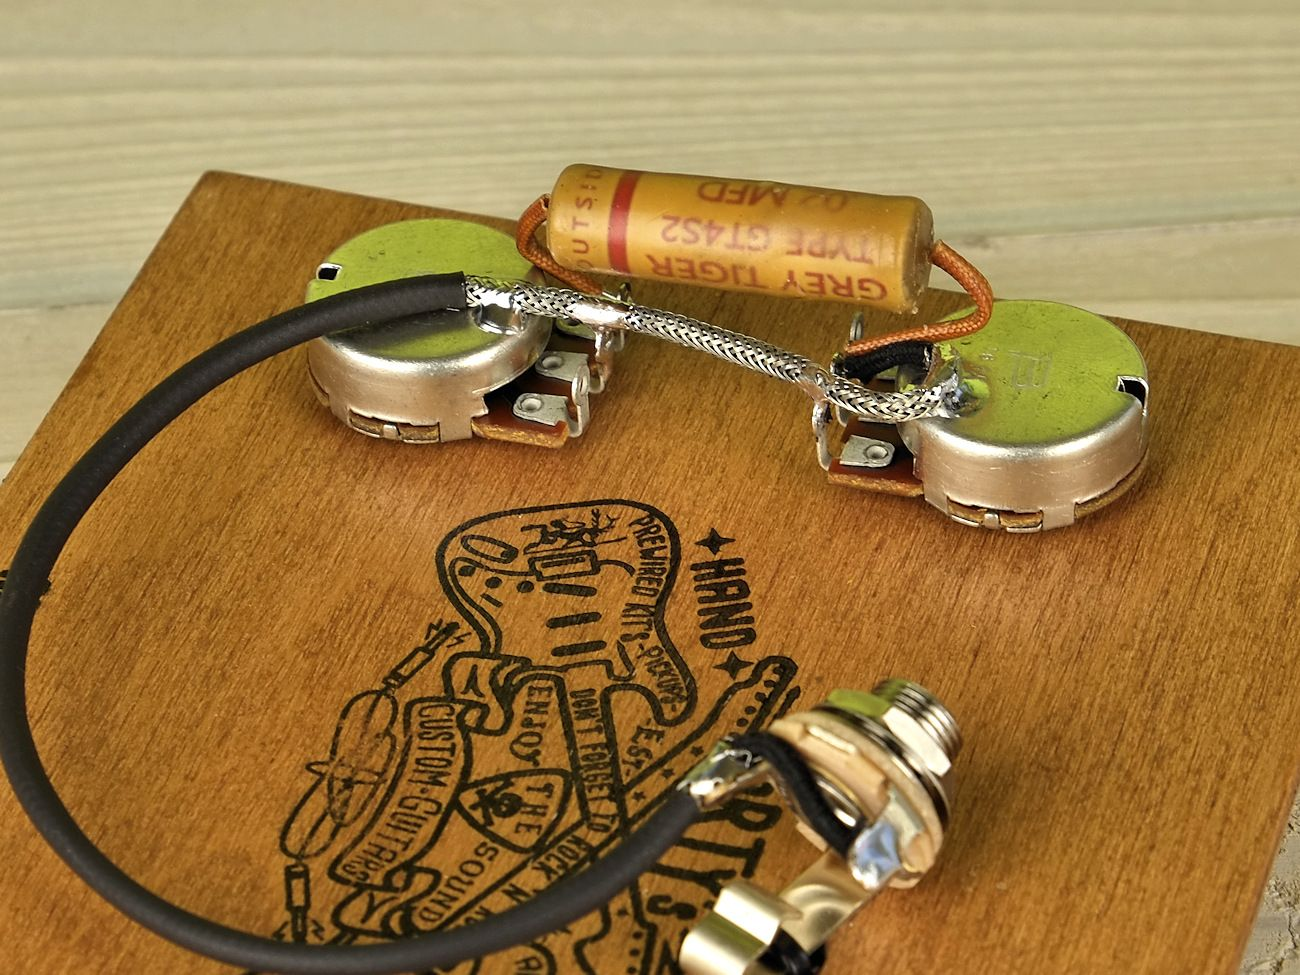 hight resolution of arty s custom guitars vintage les paul junior jr pre wired prewired kit grey tiger bourns low torque wiring assembly harness set artys prewired 59 50 s